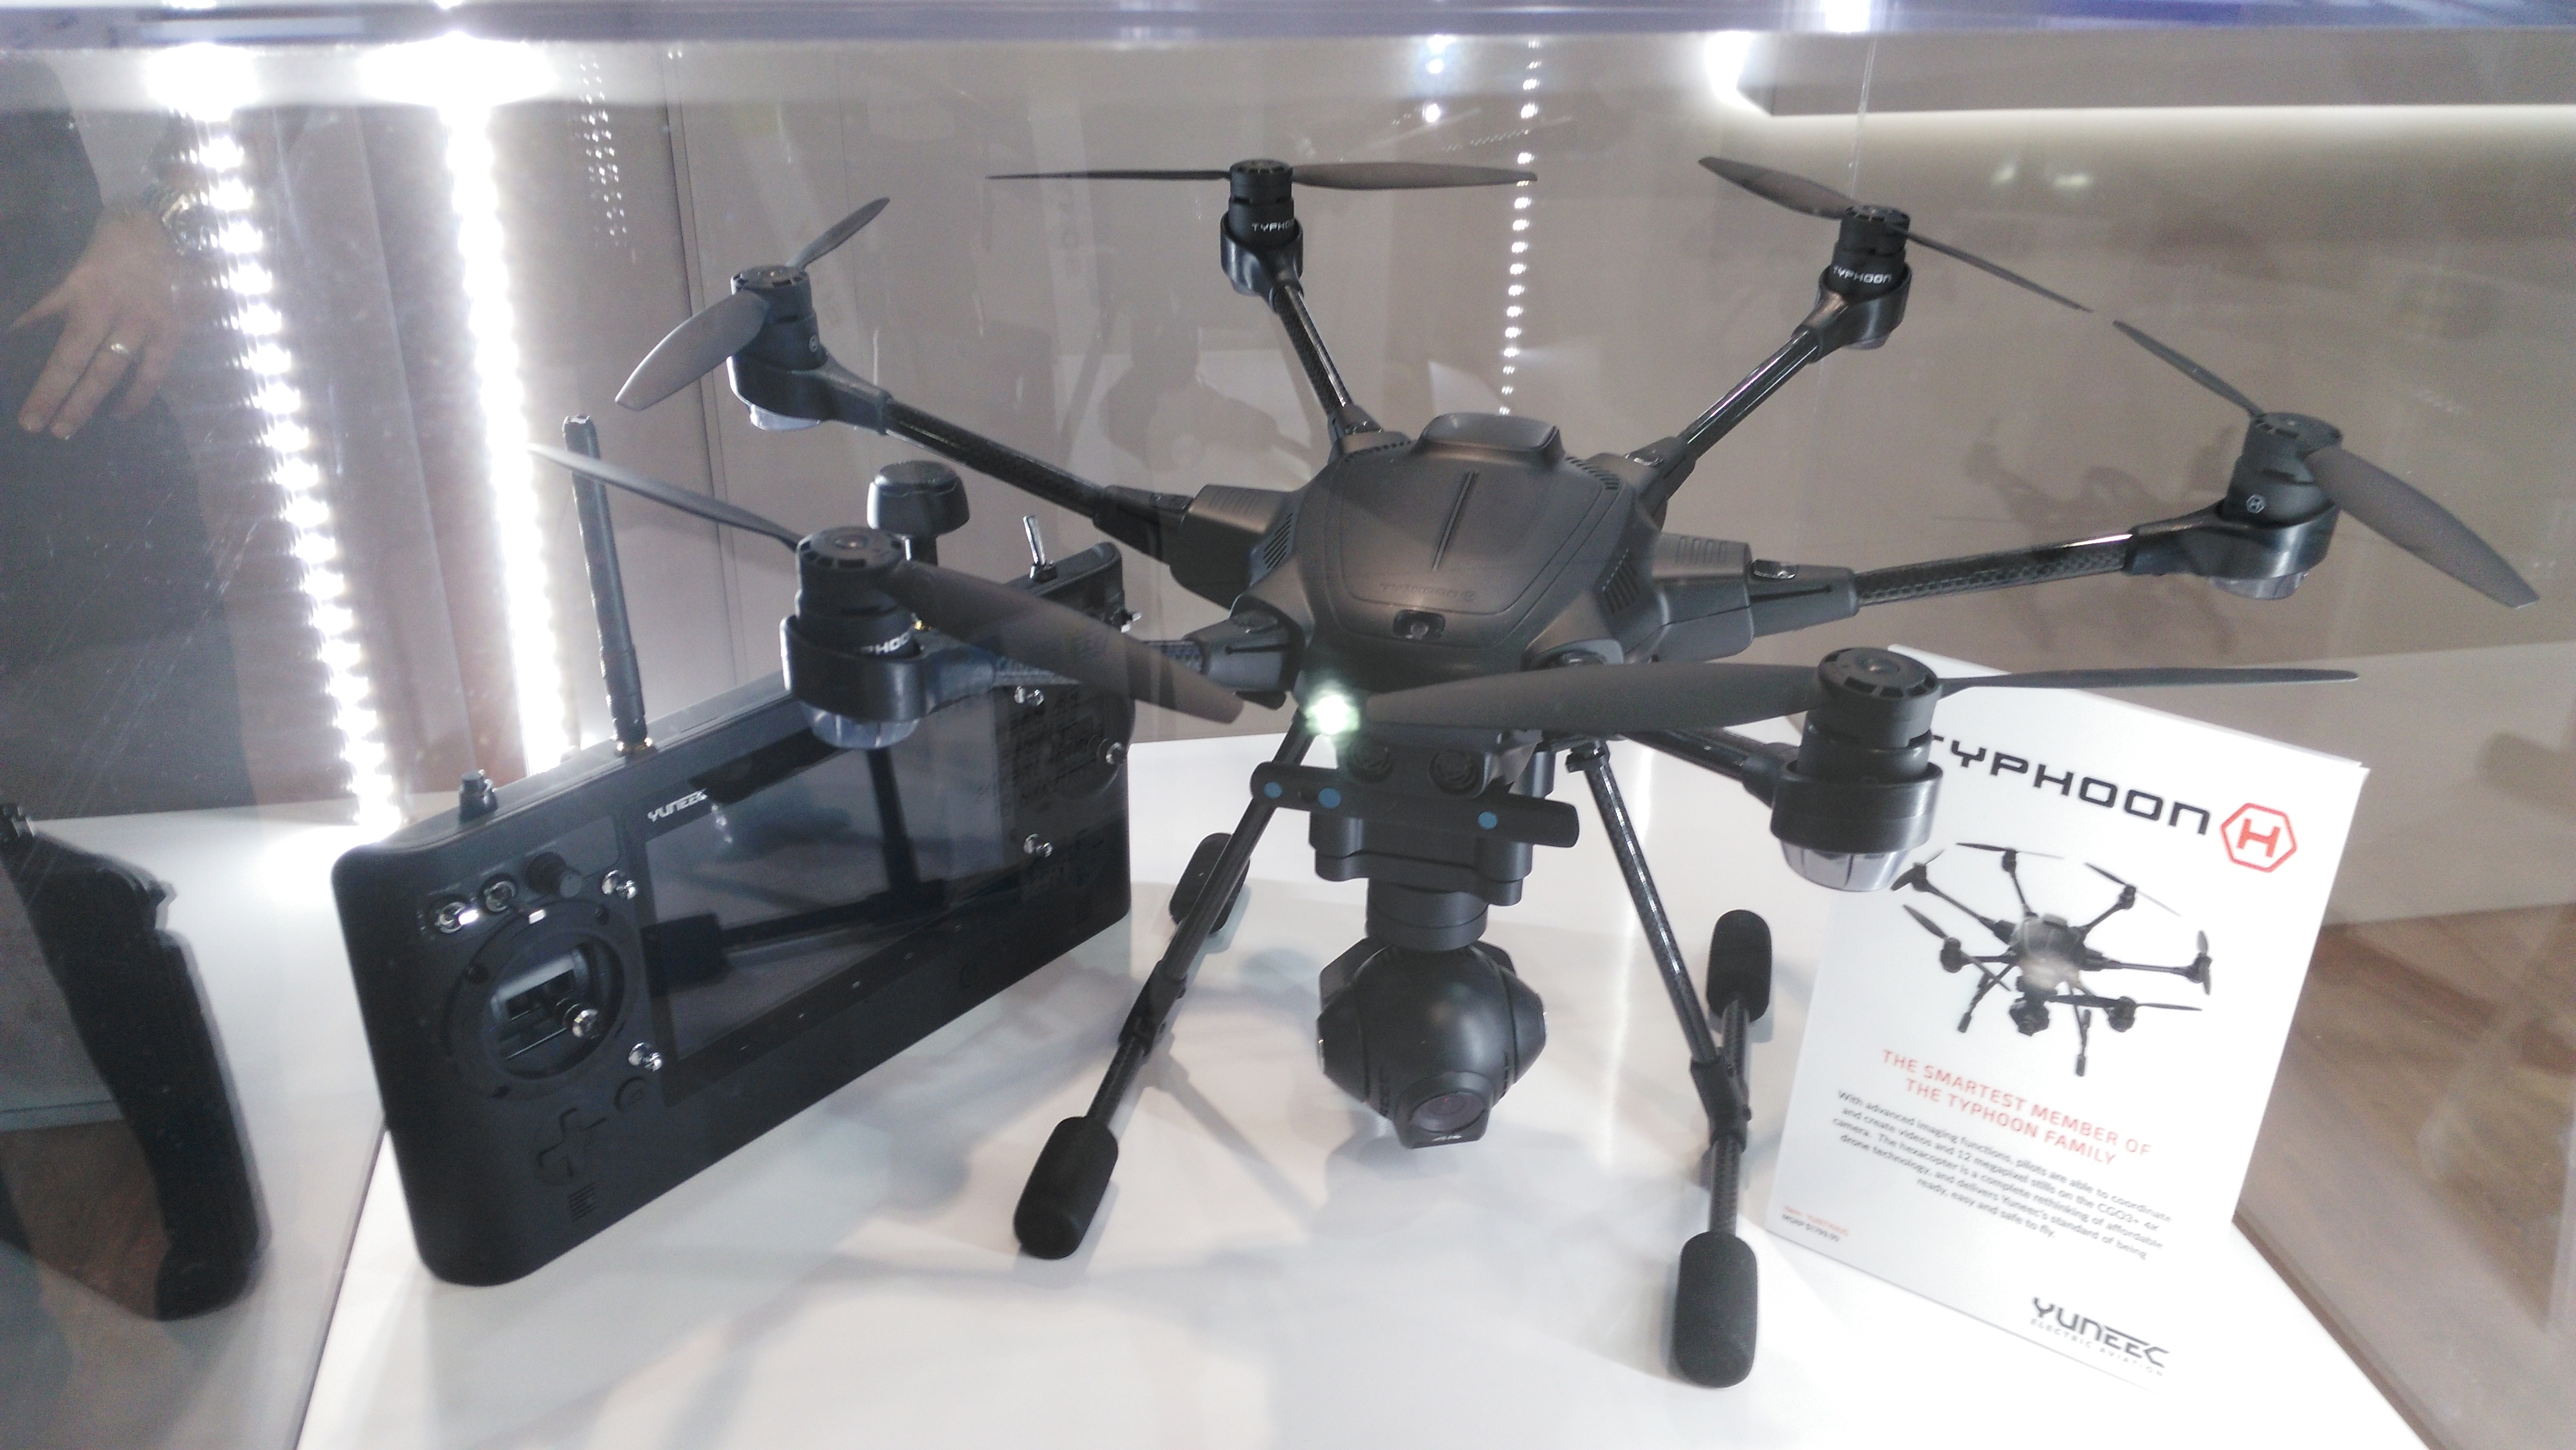 Yuneec S New 4k Typhoon H Hexacopter Has Sense And Avoid